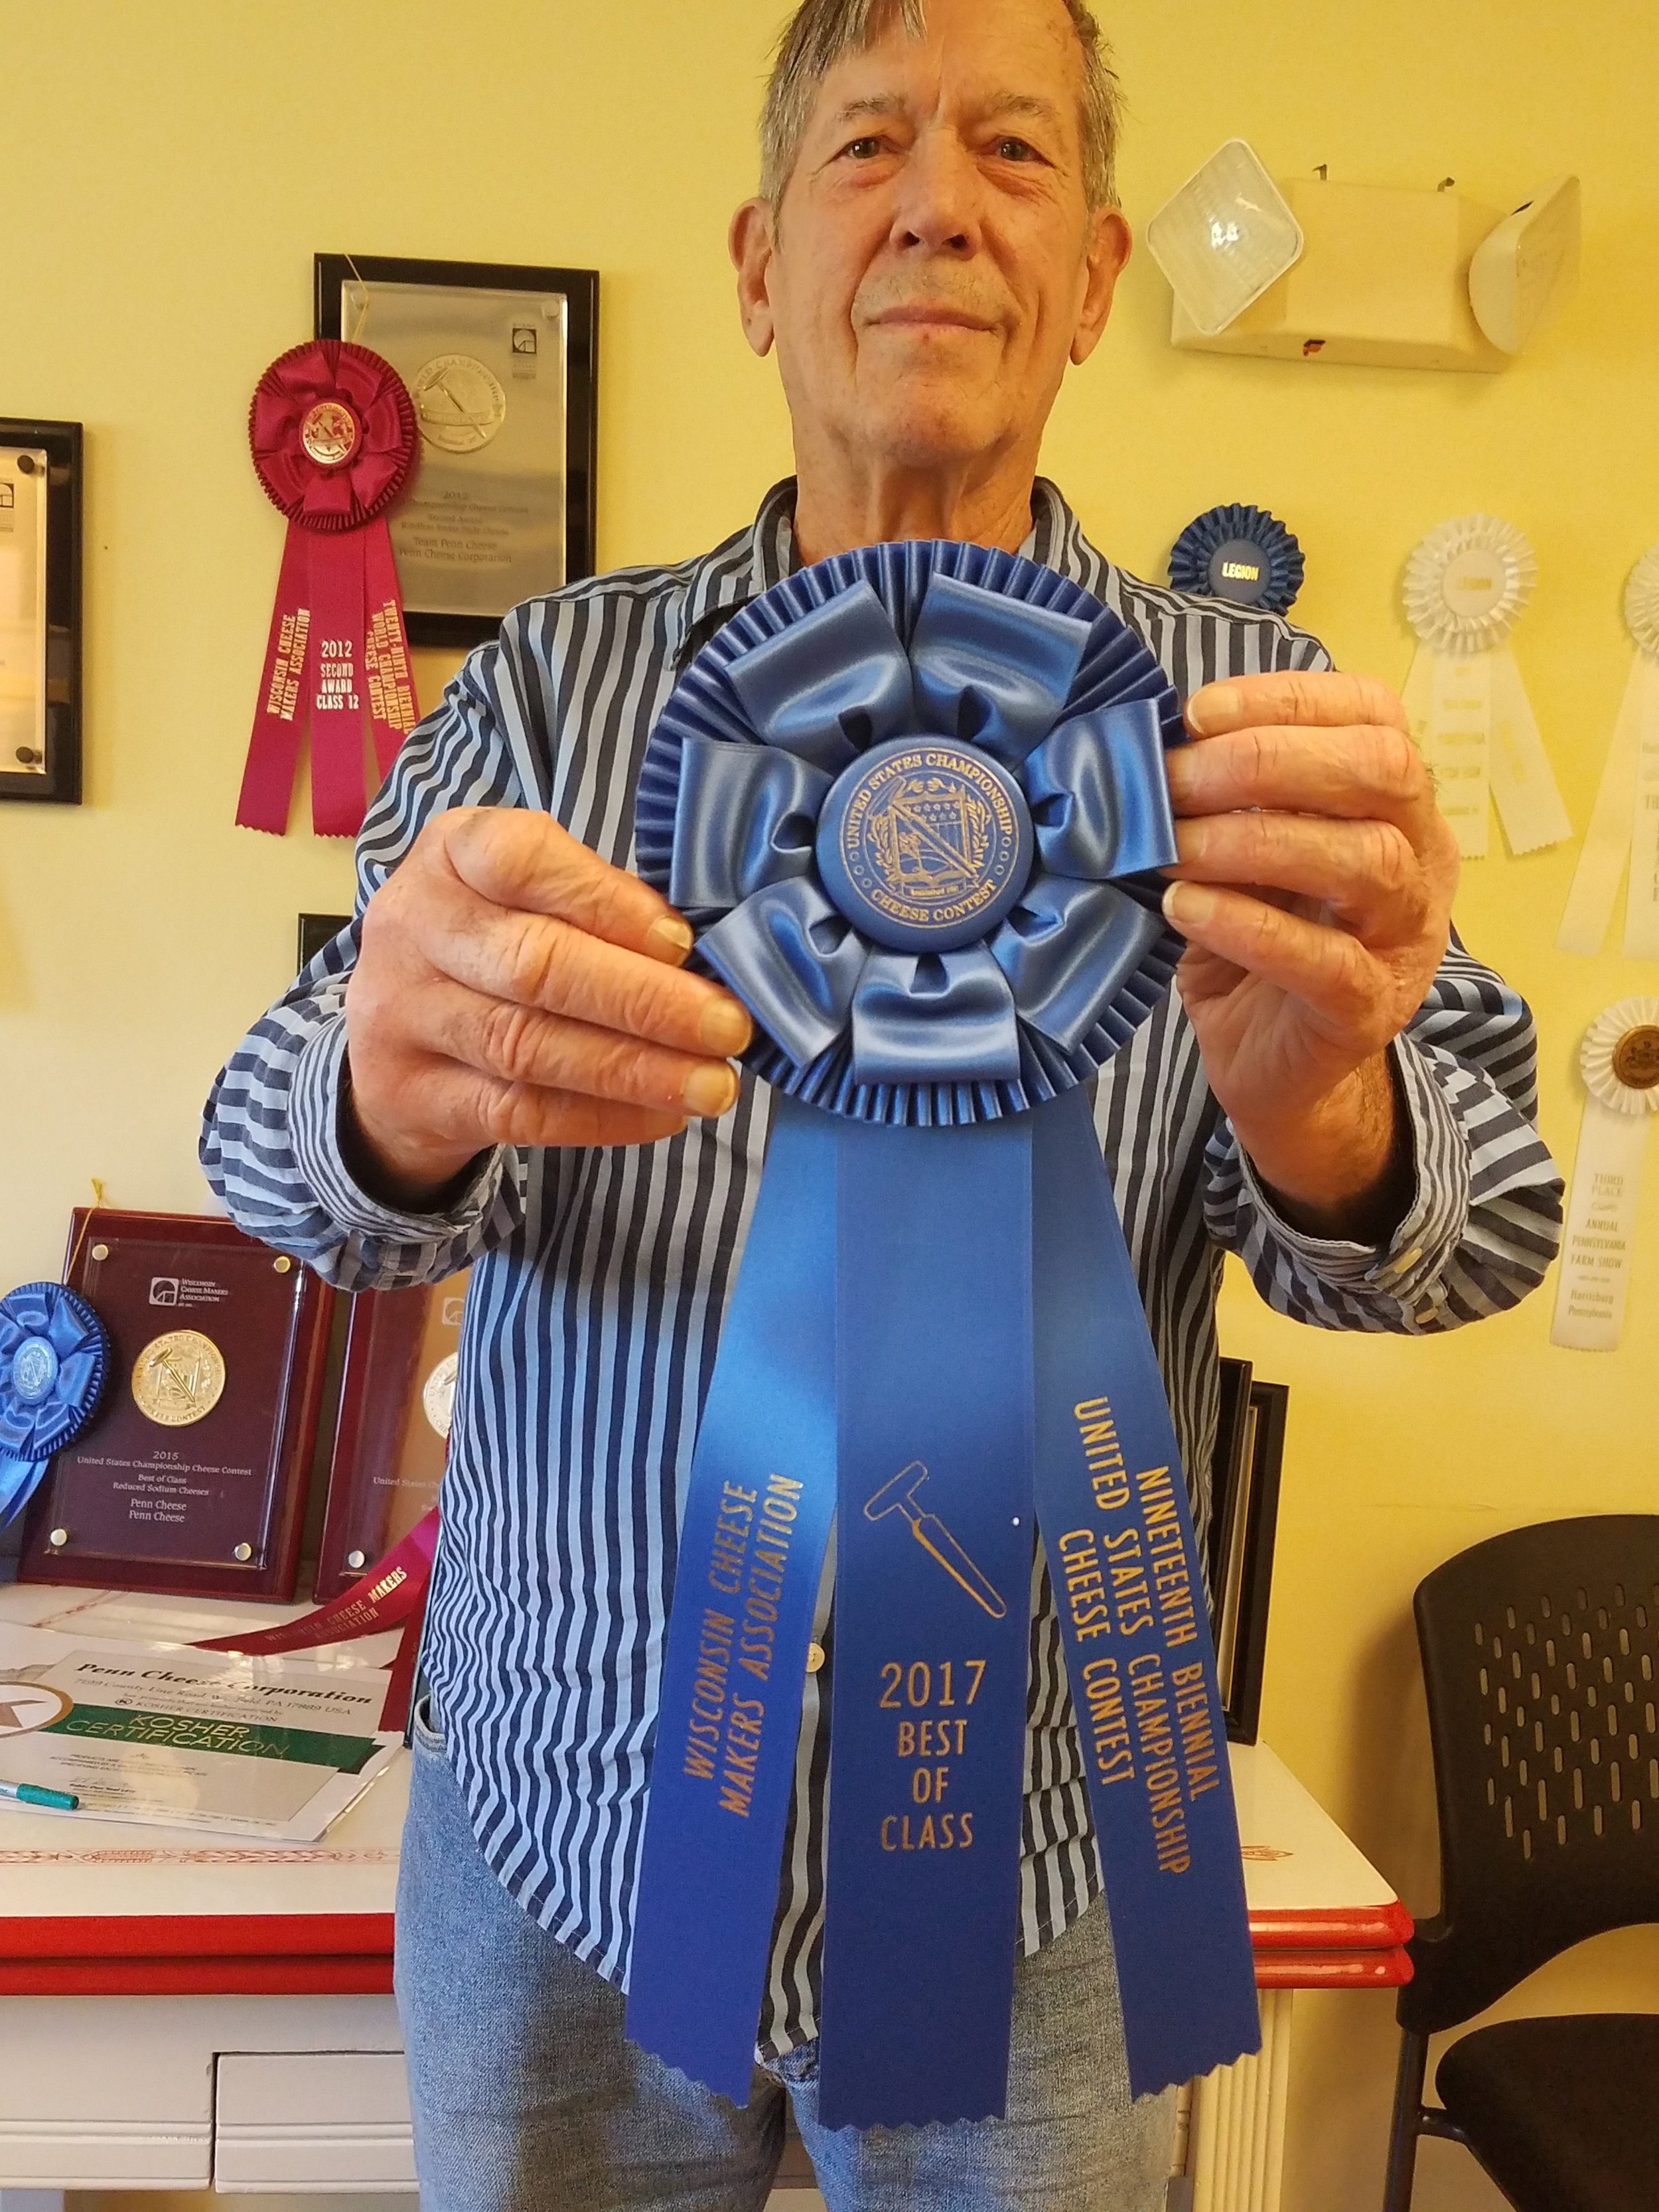 Marlin with one of his many National and International awards for his cheese.